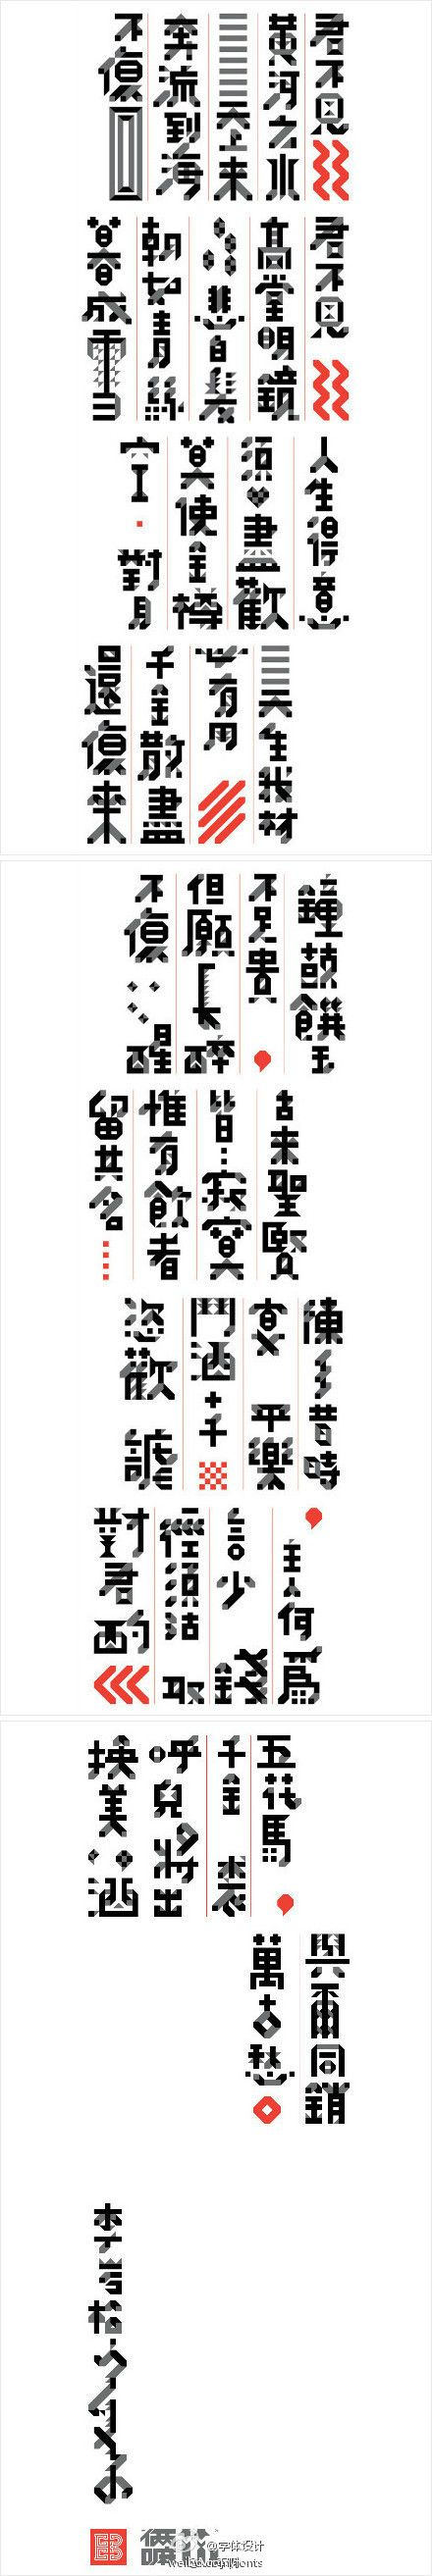 唐代 - 李白 - 將進酒                       Chinese character design.